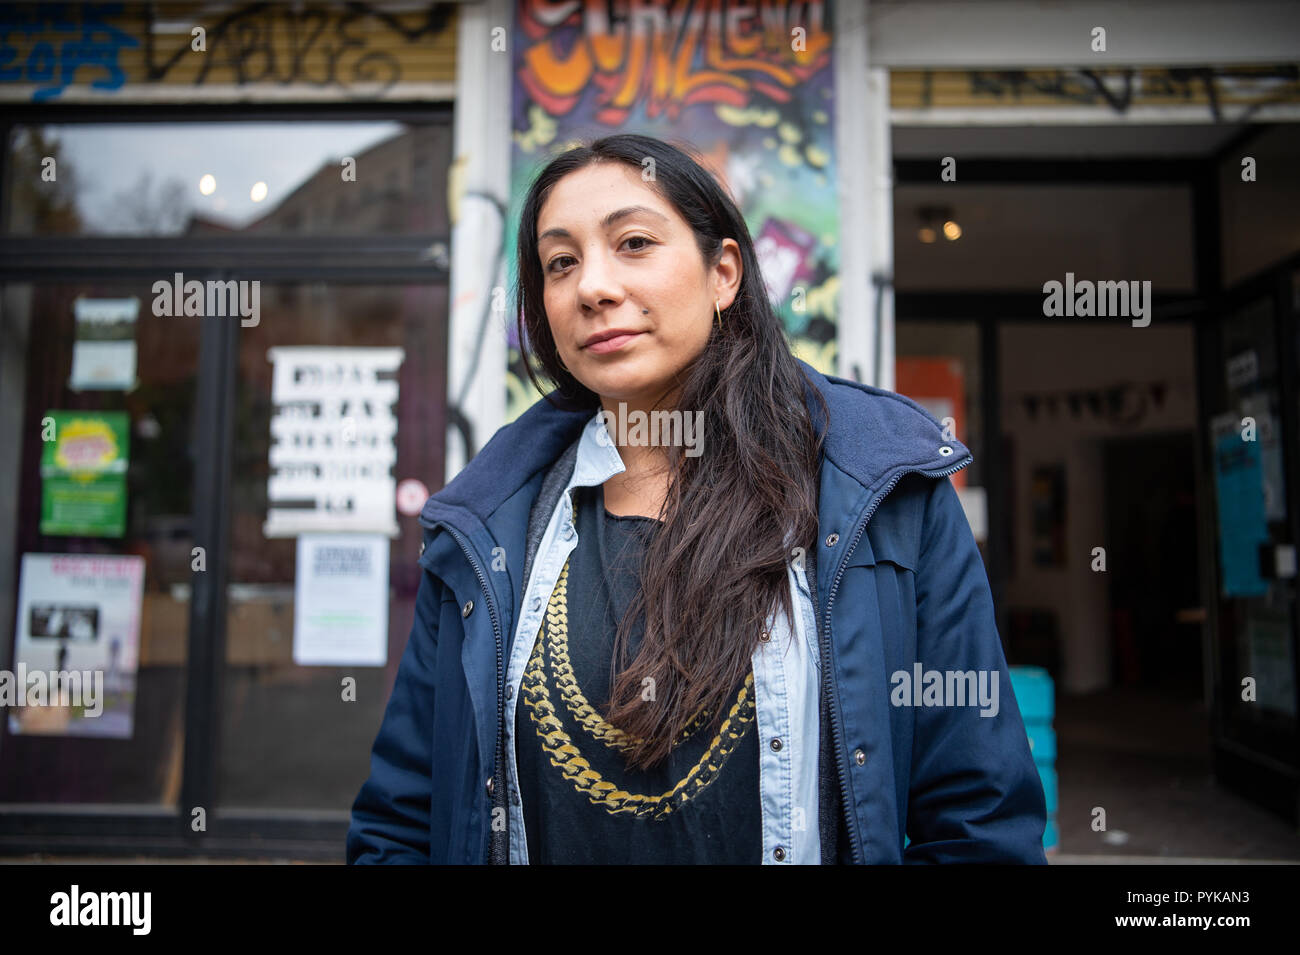 """Berlin, Germany. 26th Oct, 2018. 26 October 2018, Germany, Berlin: Sinaya Sanchis, employee of the Neukoelln girls' club """"Schilleria"""", stands in front of the entrance of the Neukoelln club. Due to the tense real estate market in Berlin, social housing projects are also increasingly being squeezed out. (to """"Association fears displacement of social housing projects"""" of 29.10.2018) Credit: Arne Immanuel Bänsch/dpa/Alamy Live News Stock Photo"""